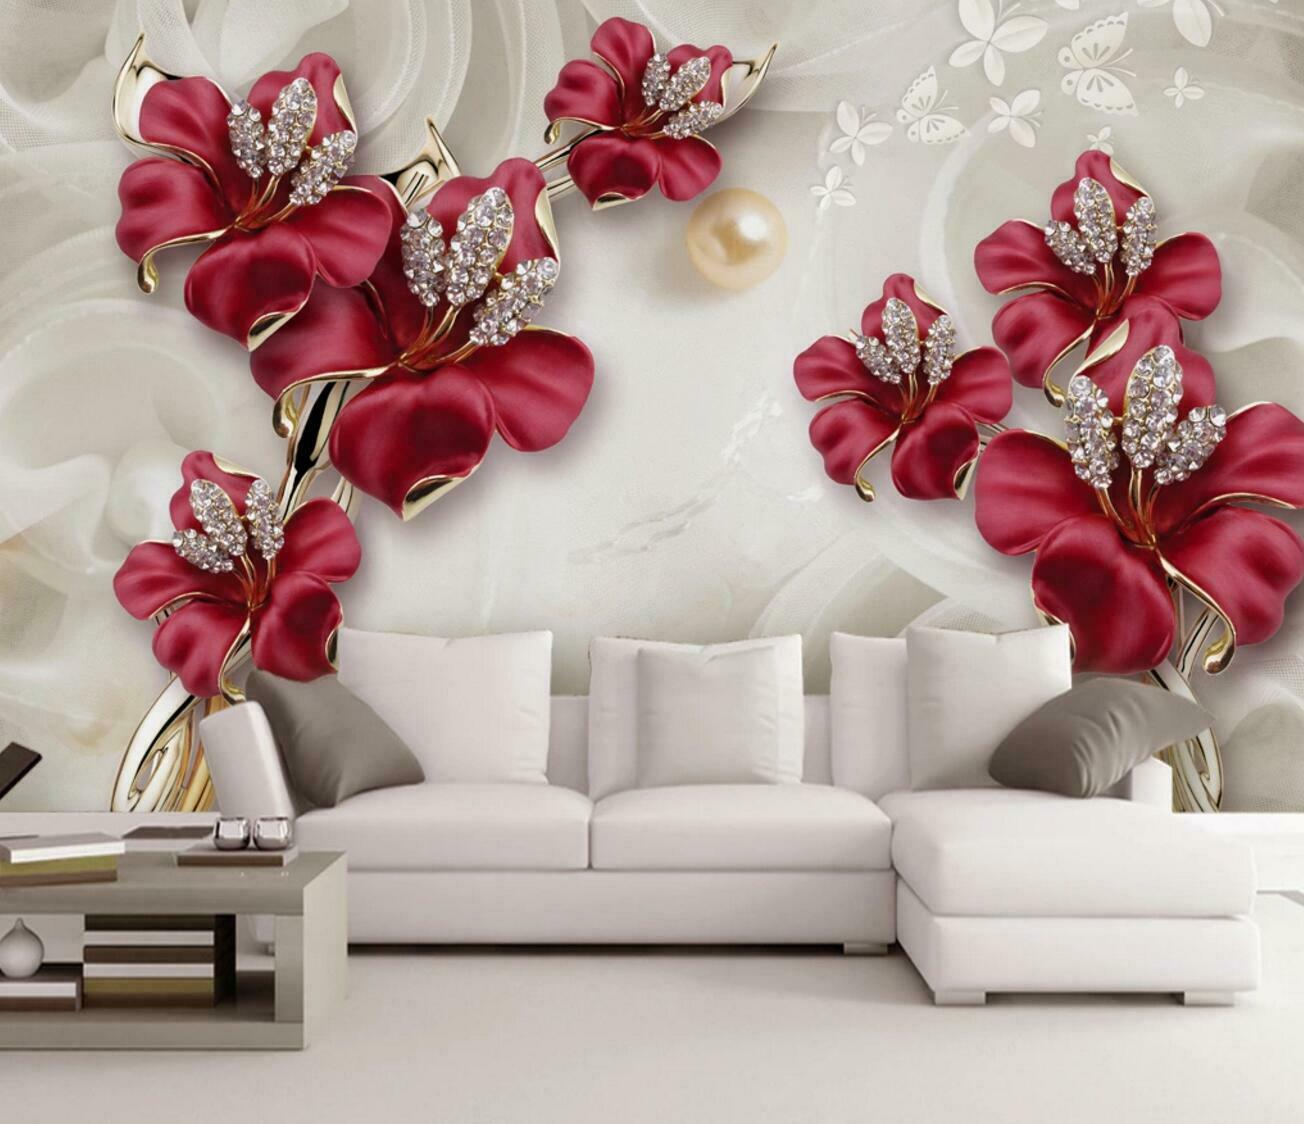 Décoration Murale En Relief 3d red tulip relief butterfly wall mural removable self-adhesive sticker